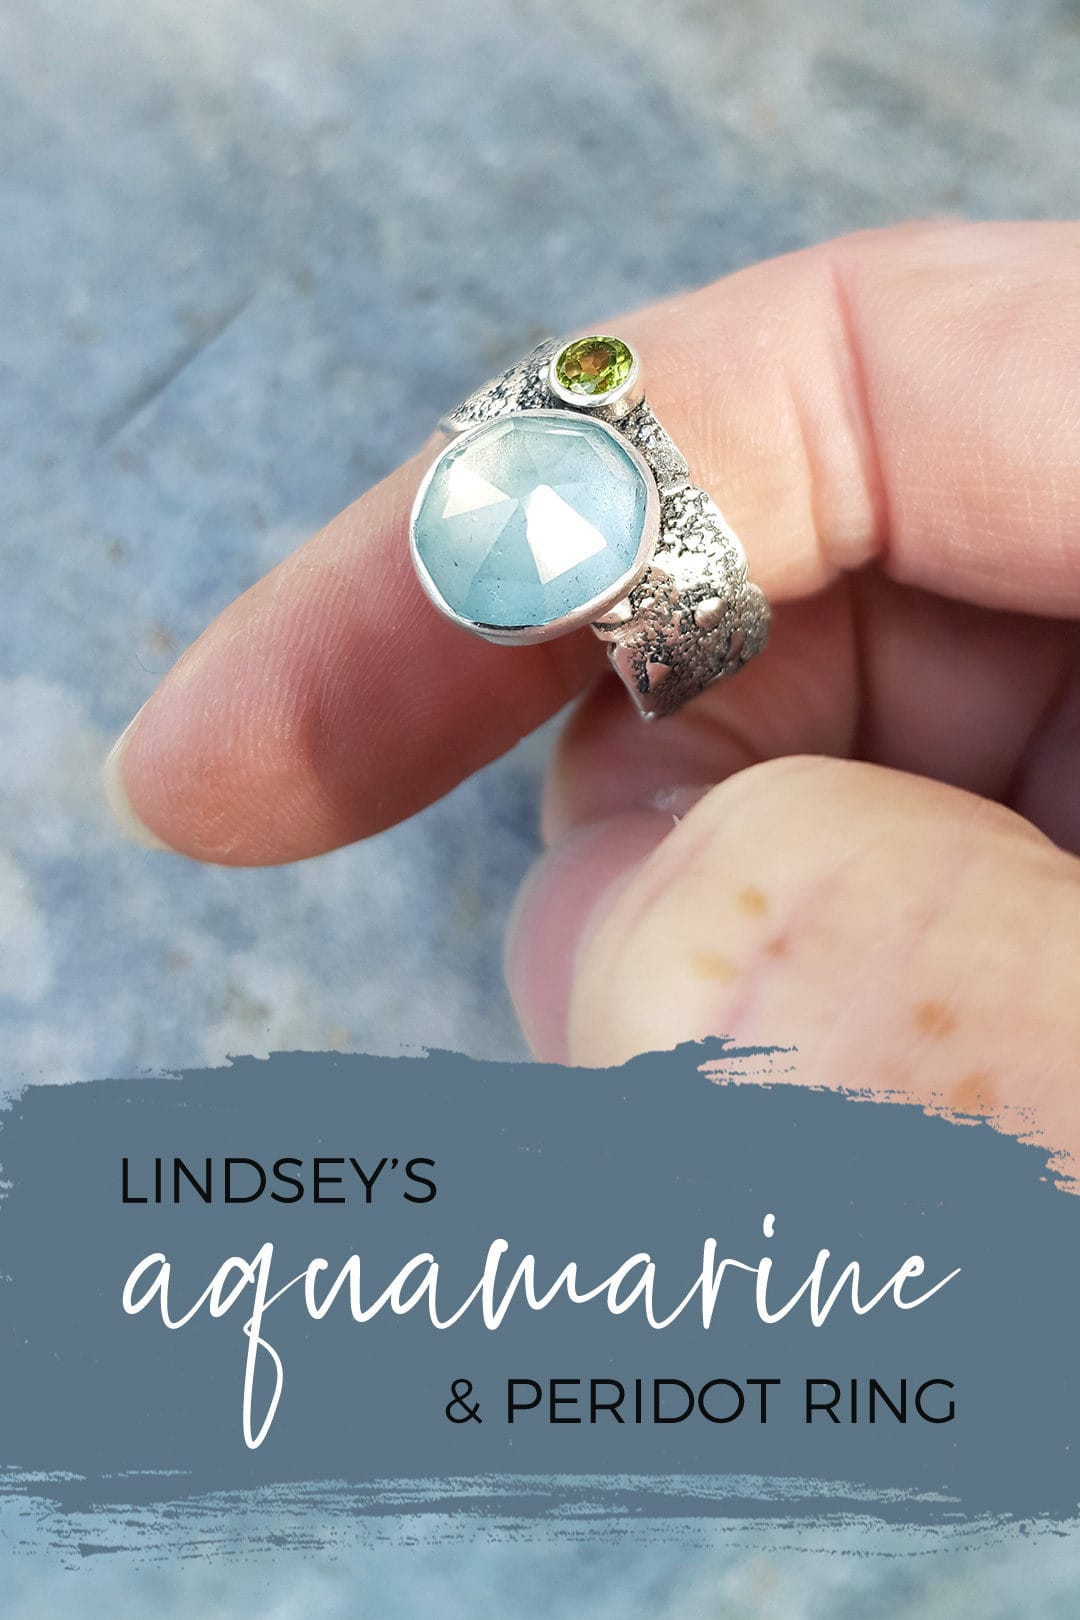 Lindsey's aquamarine ring in textured sterling silver with peridot